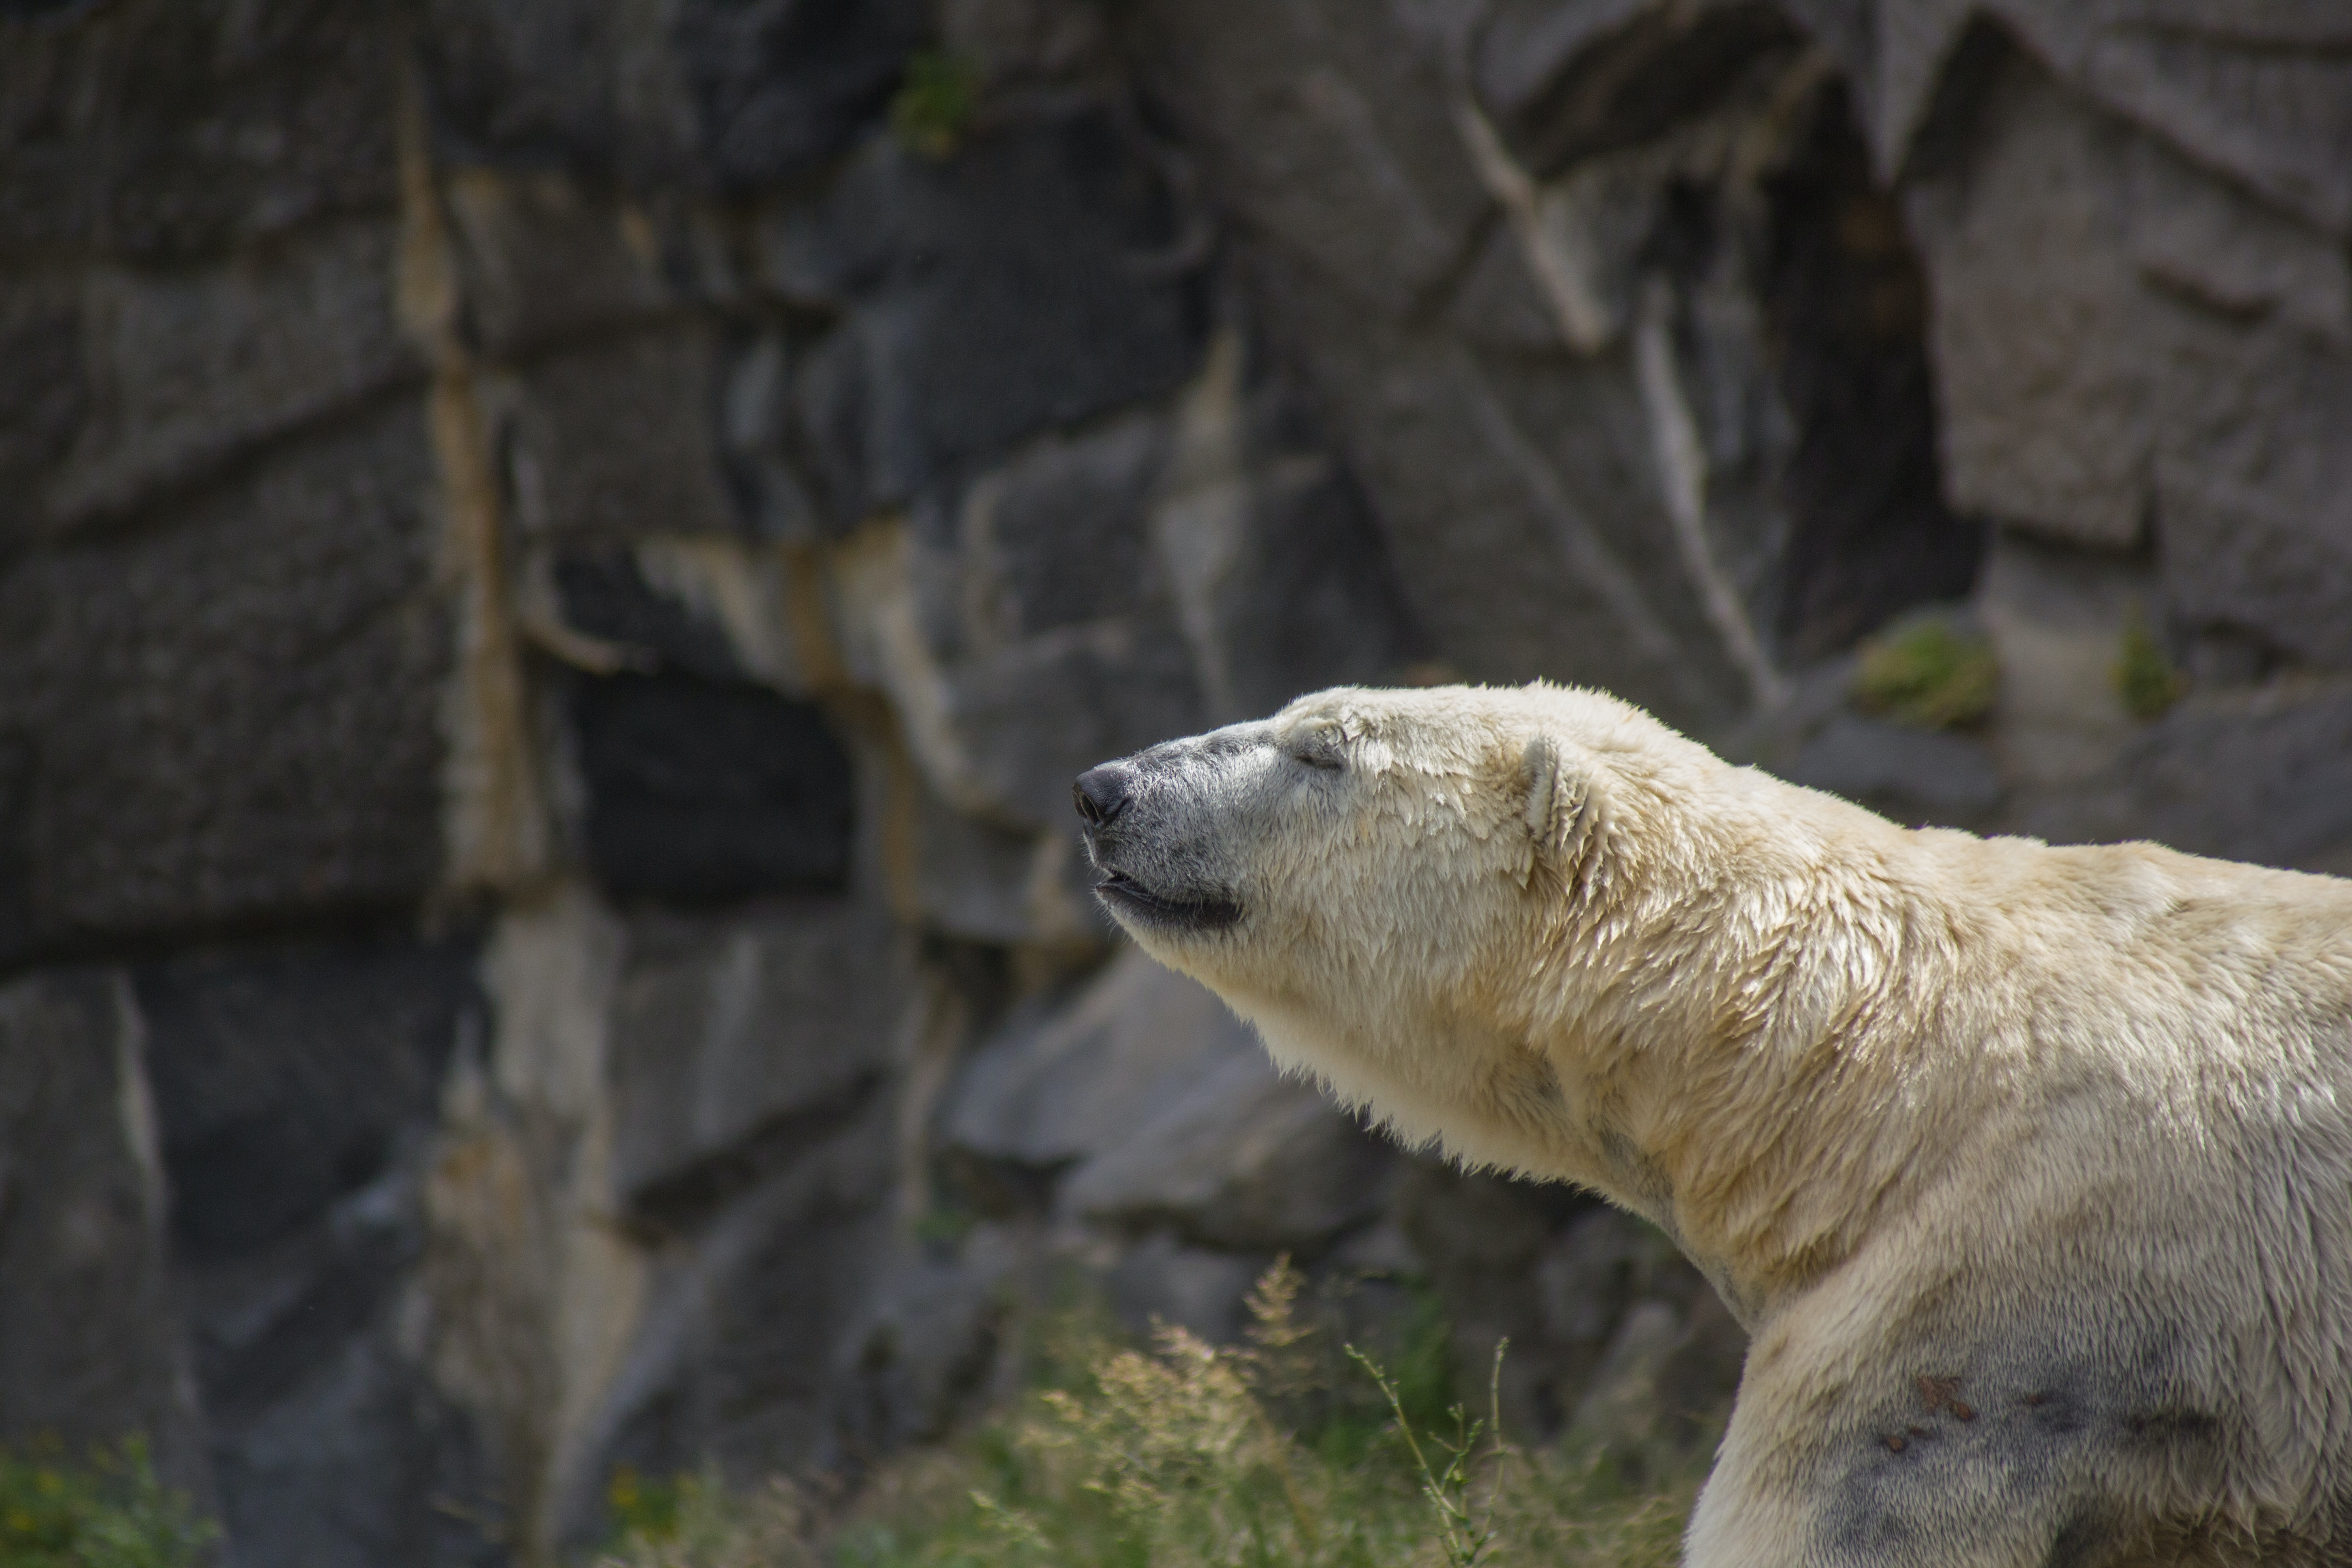 A polar bear raising its head and closing its eyes next to a rocky wall